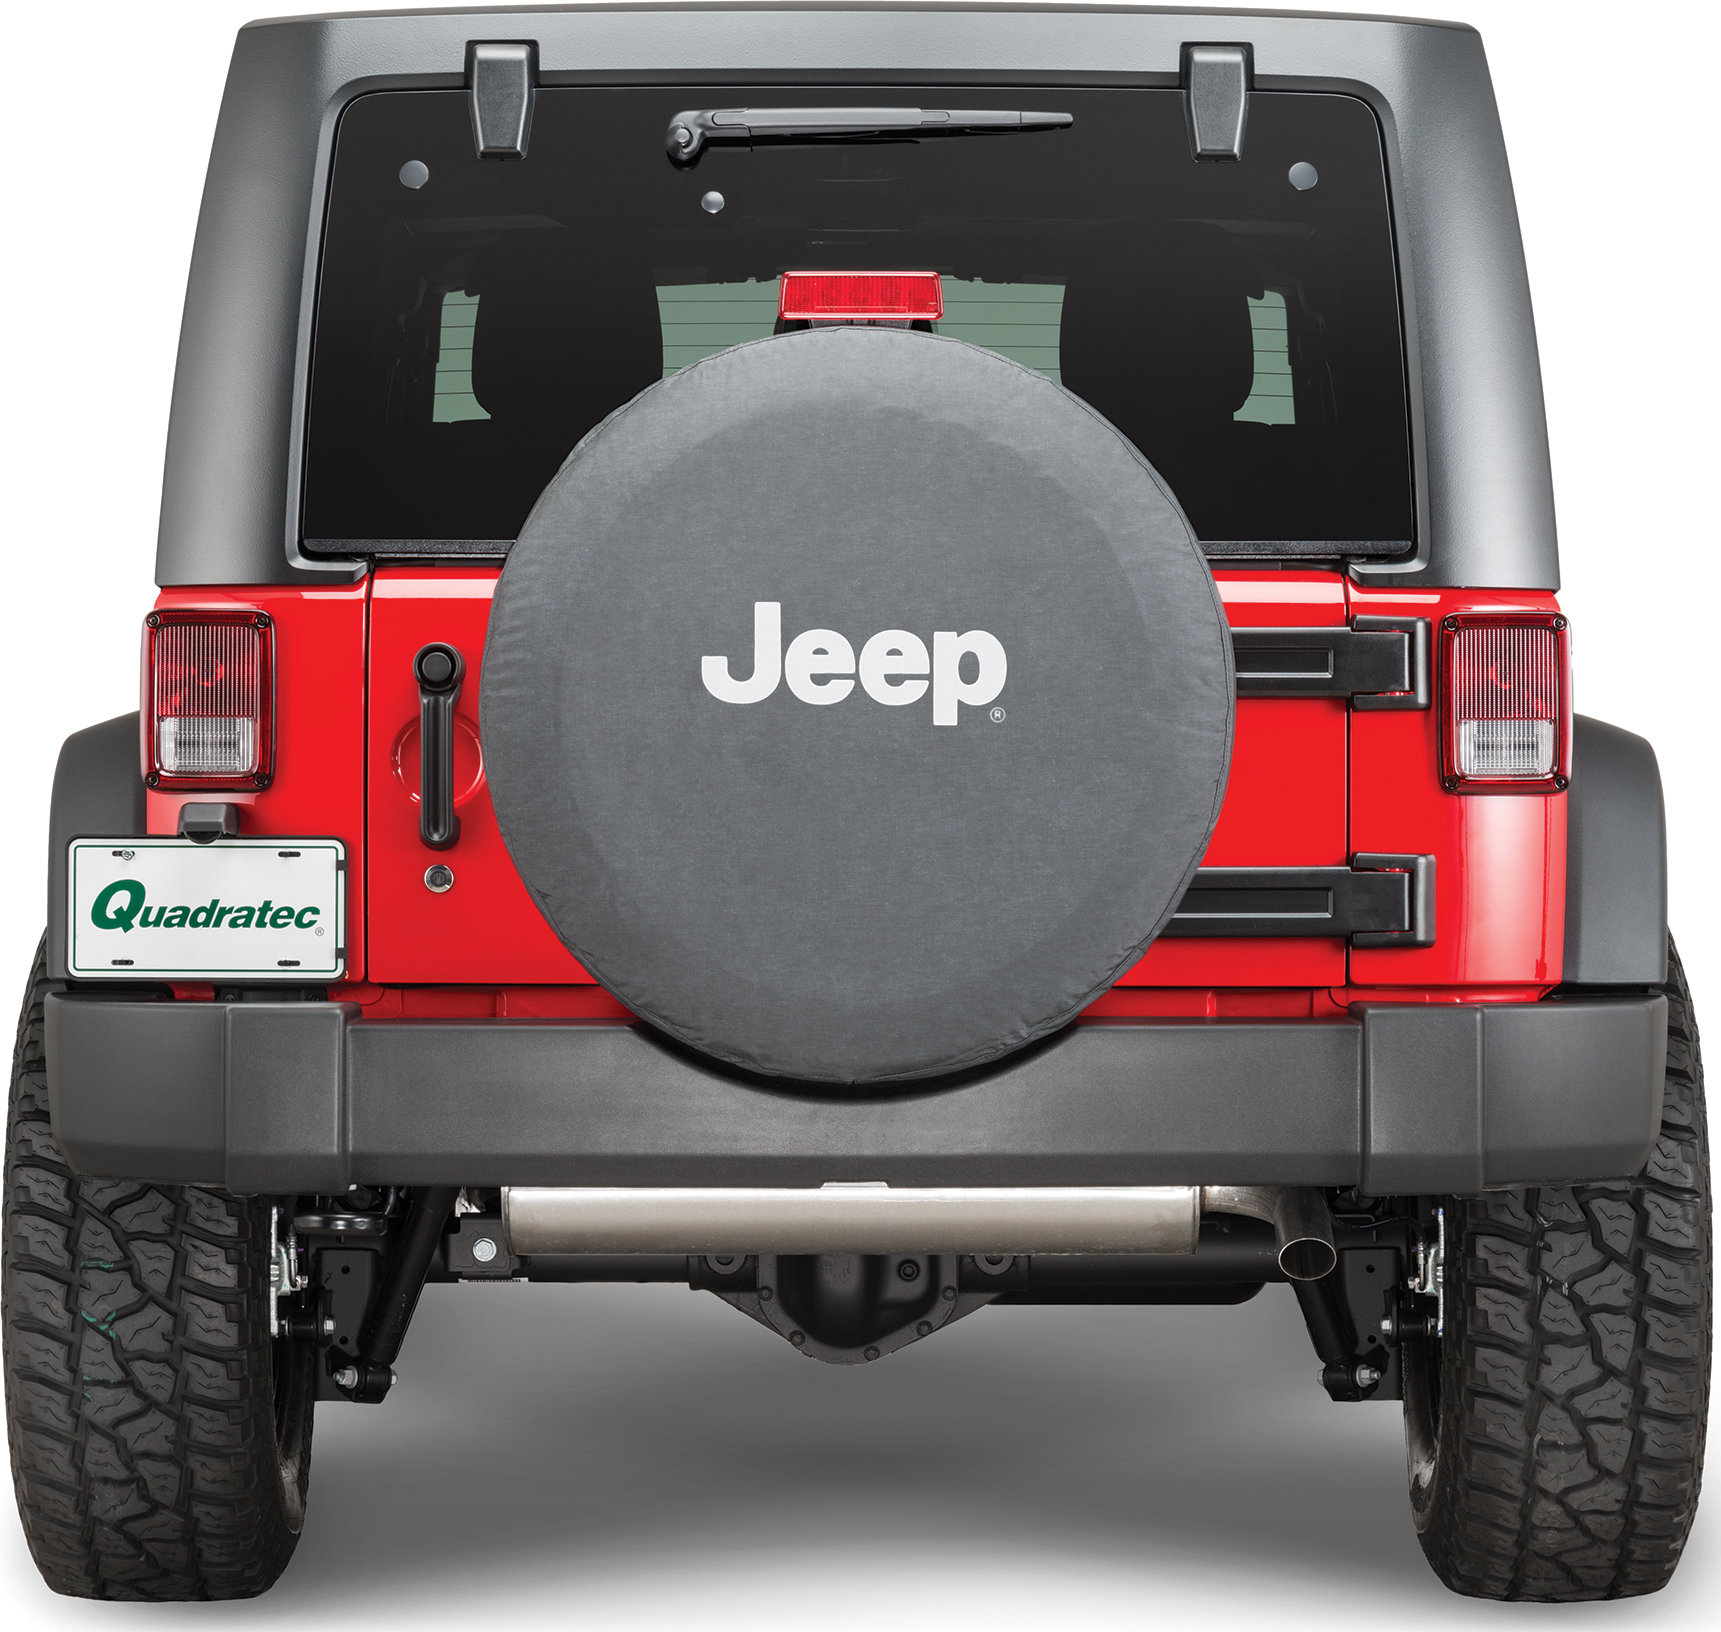 hight resolution of mopar jeep logo tire covers in black denim with white jeep logo